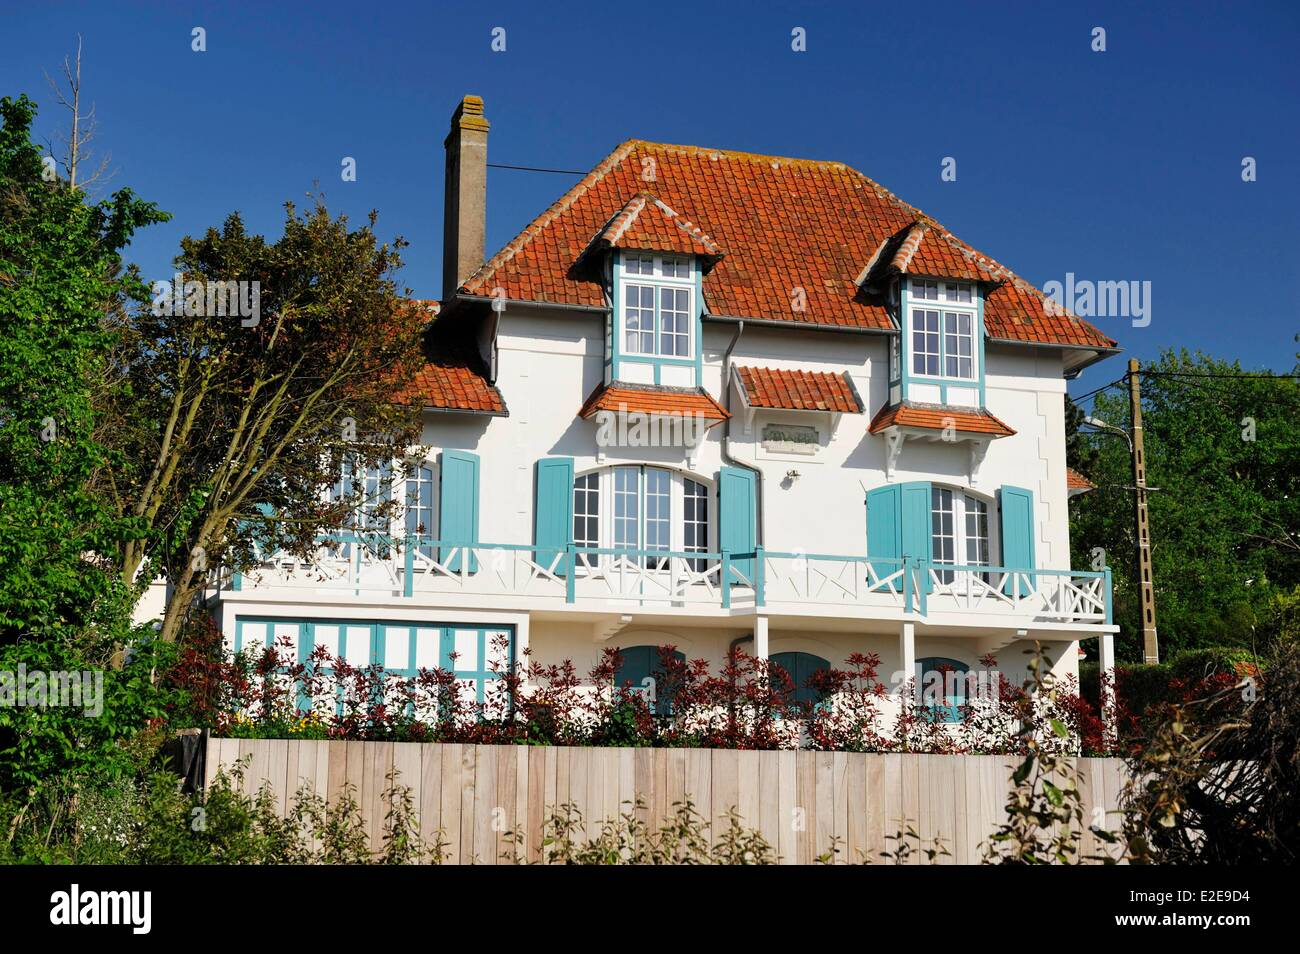 france pas de calais wissant white house with red roof and blue stock photo royalty free. Black Bedroom Furniture Sets. Home Design Ideas